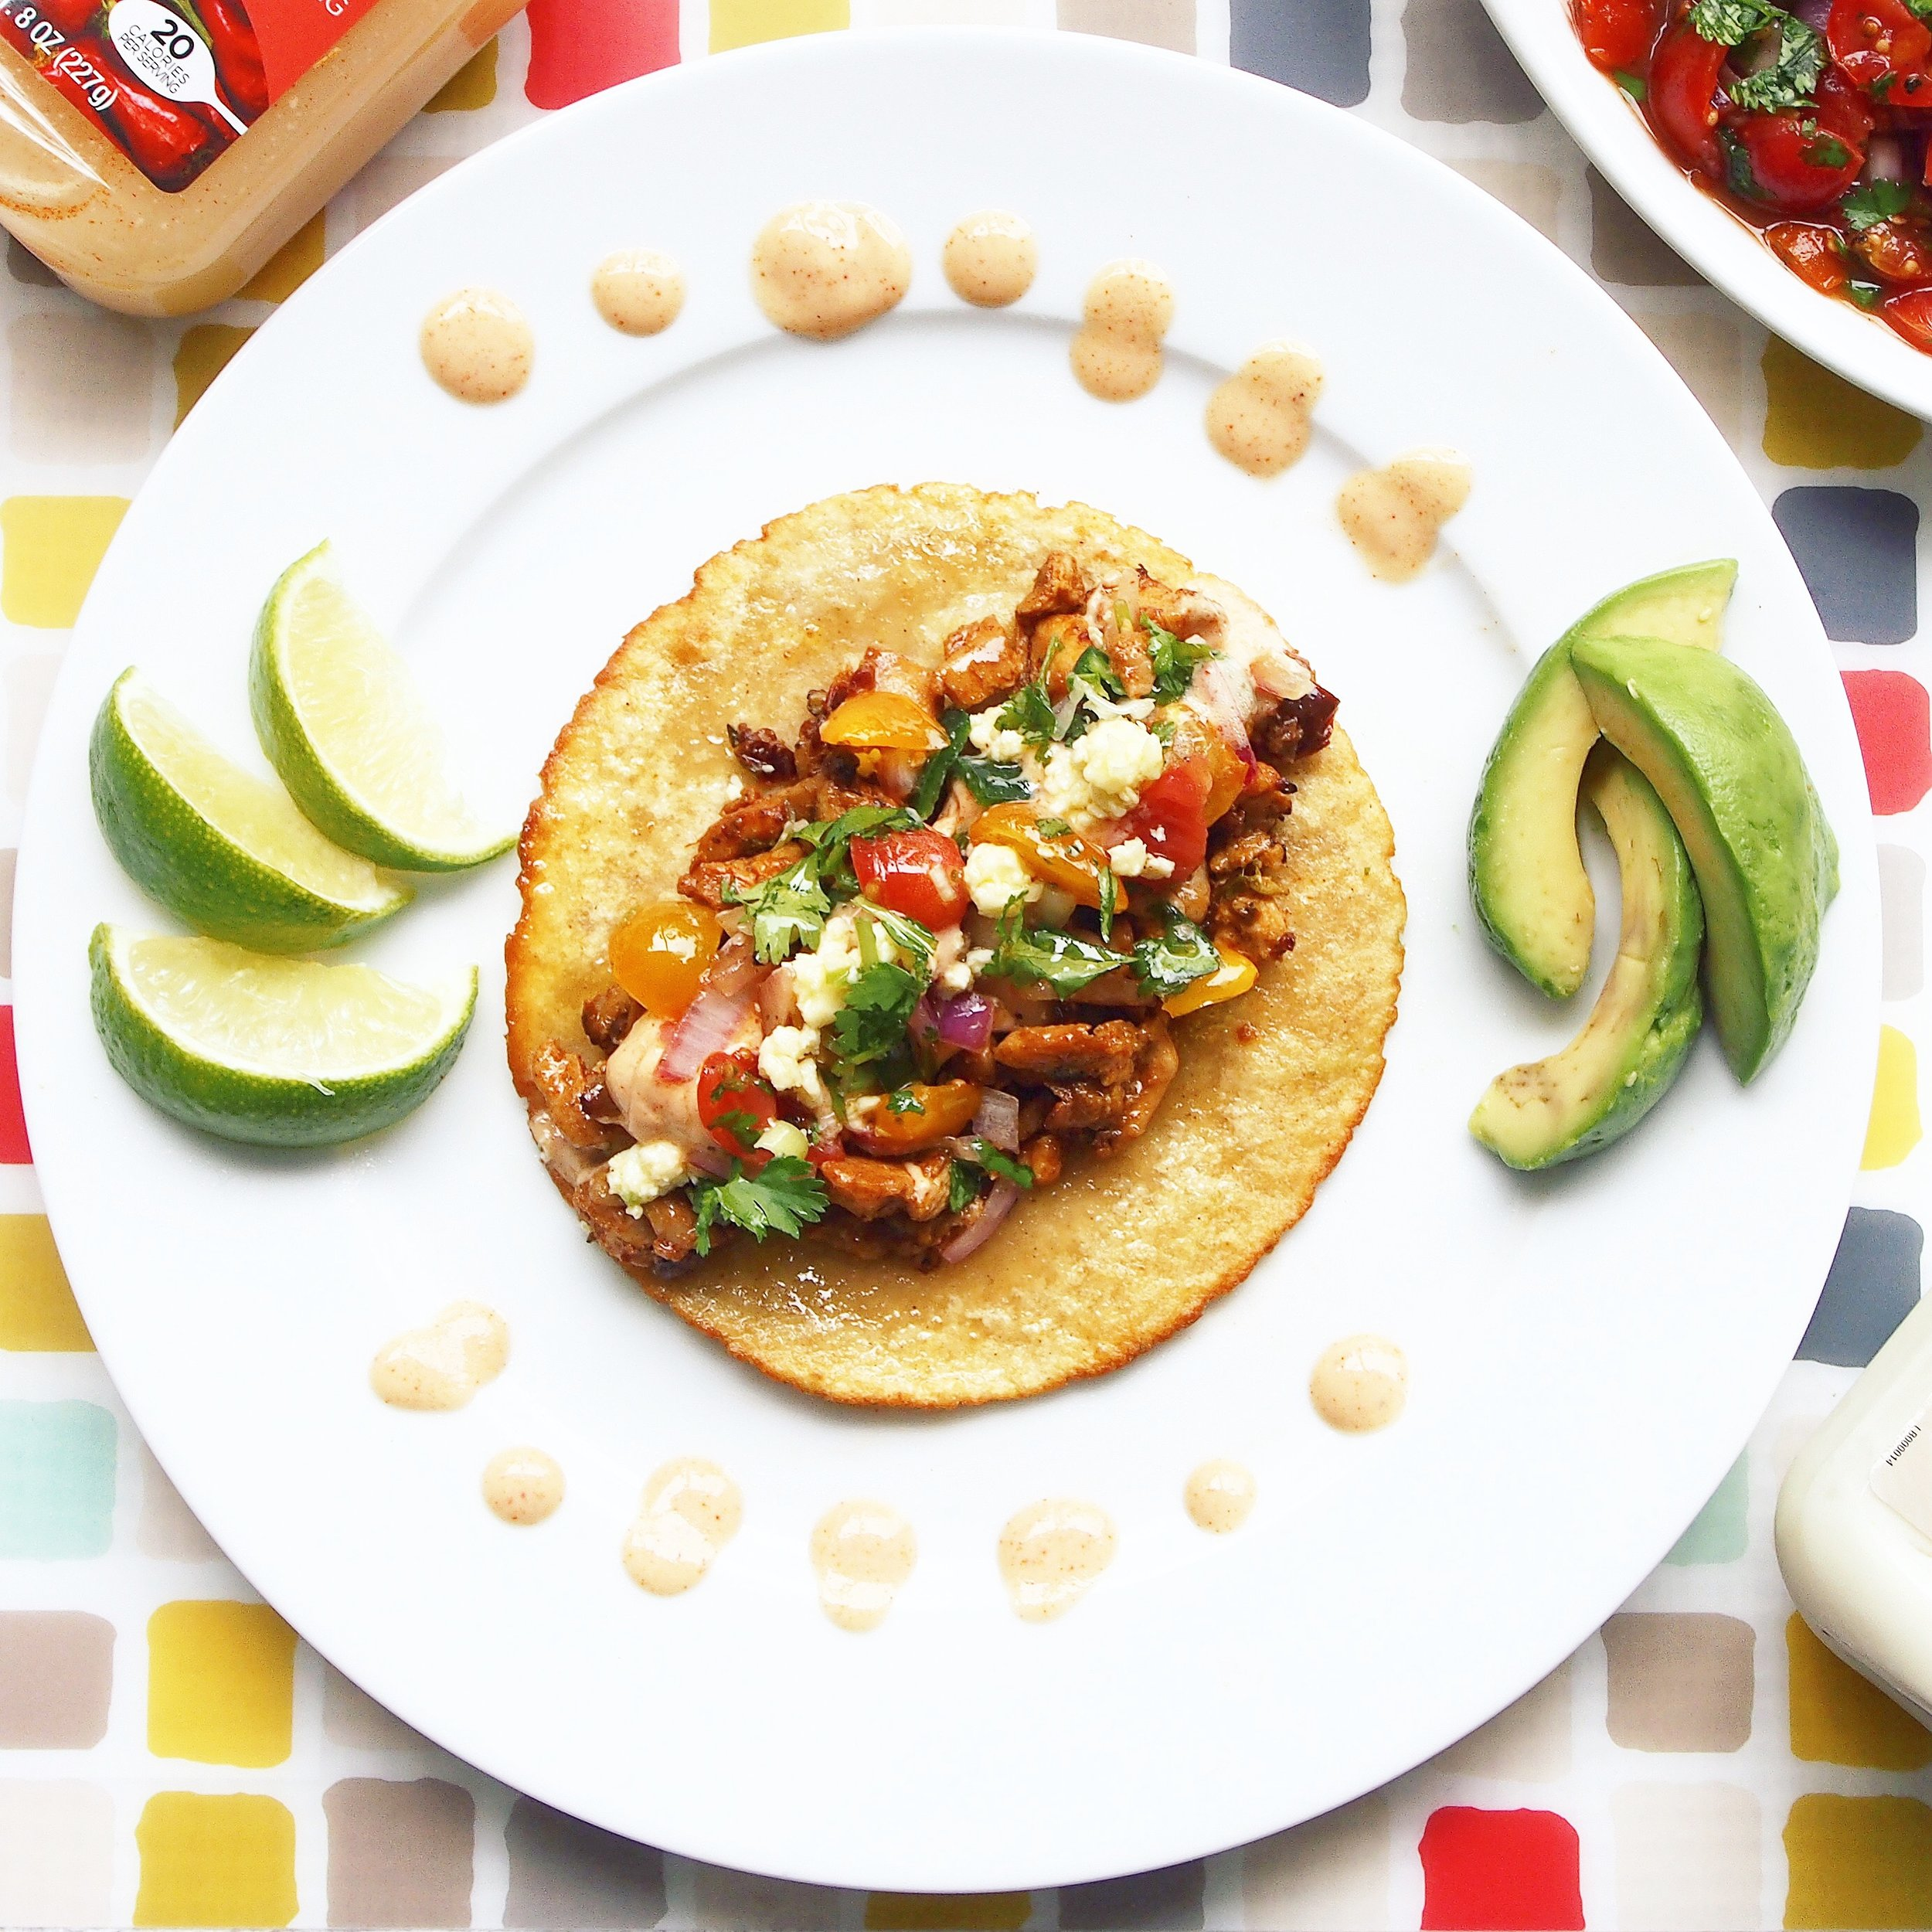 Check out these gorgeous spicy tacos with chipotle chilies, jalapenos, and tomato salsa